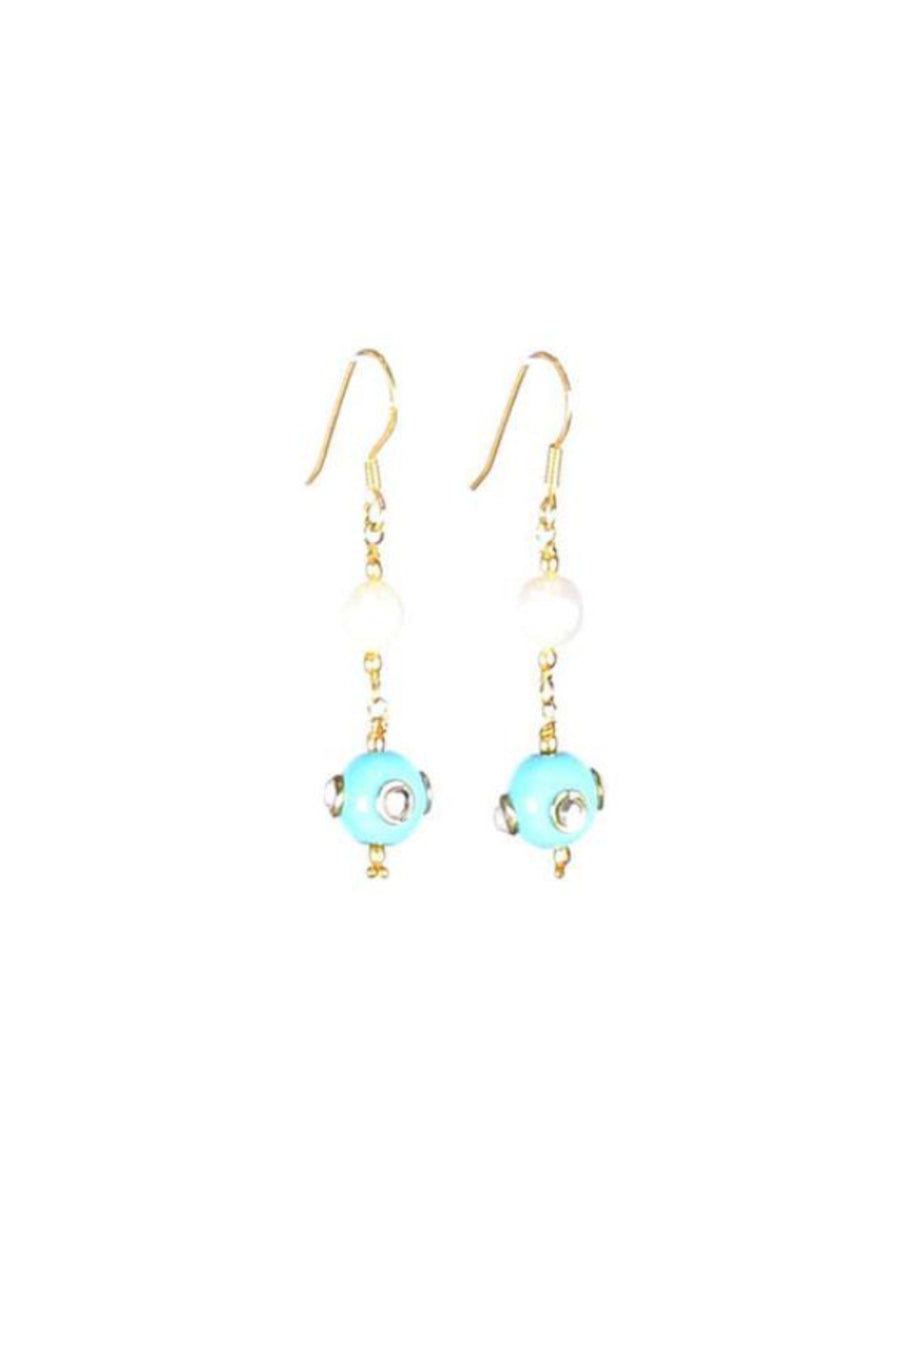 Handcrafted Turquoise Studded Bead & Pearl Earrings with 925 Sterling Silver Hooks